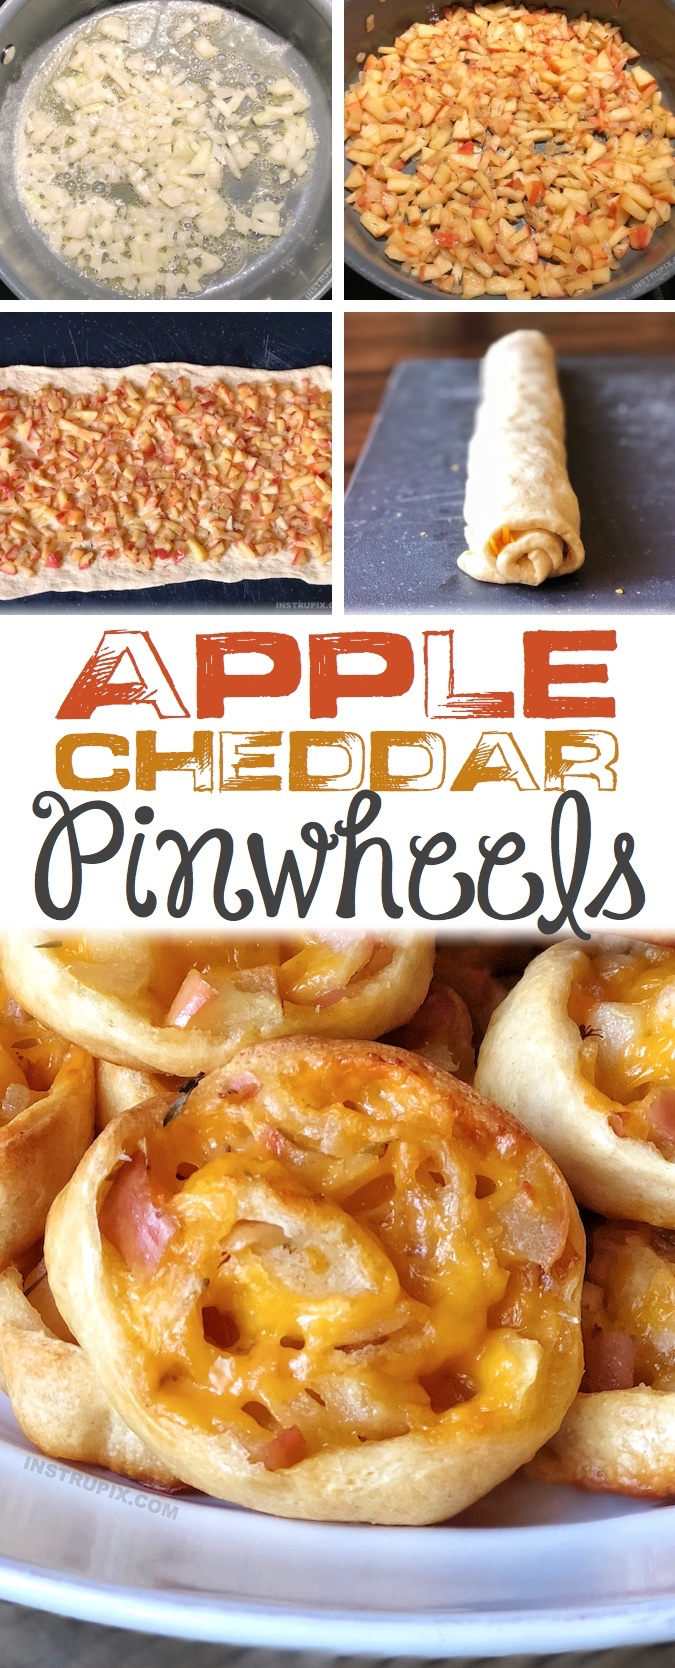 Apple Cheddar Pinwheels Recipe | This easy Thanksgiving and fall appetizer recipe idea is always a hit at parties or family get-togethers! The combination of apples and cheddar is delicious! They warm baked roll ups taste like sweet stuffing. They are a yummy snack too! Instrupix.com